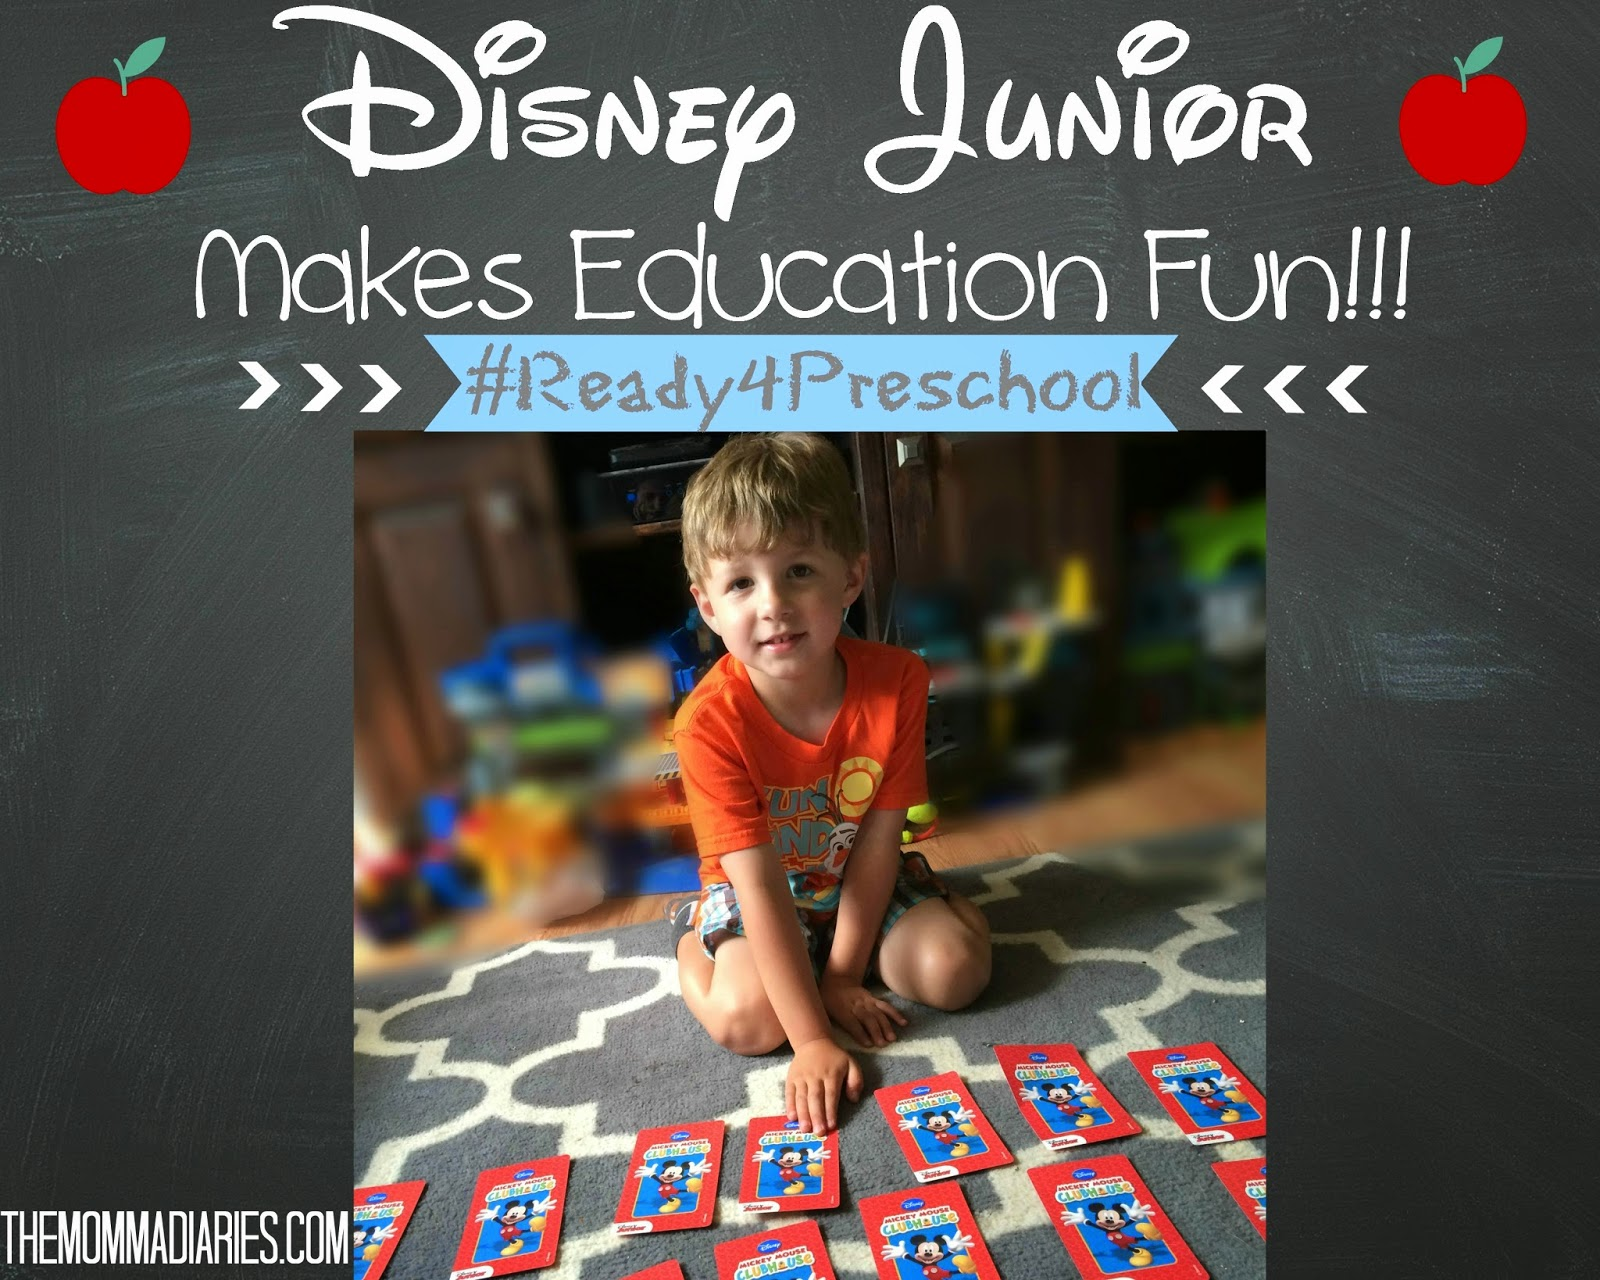 Disney Junior #Ready4Preschool